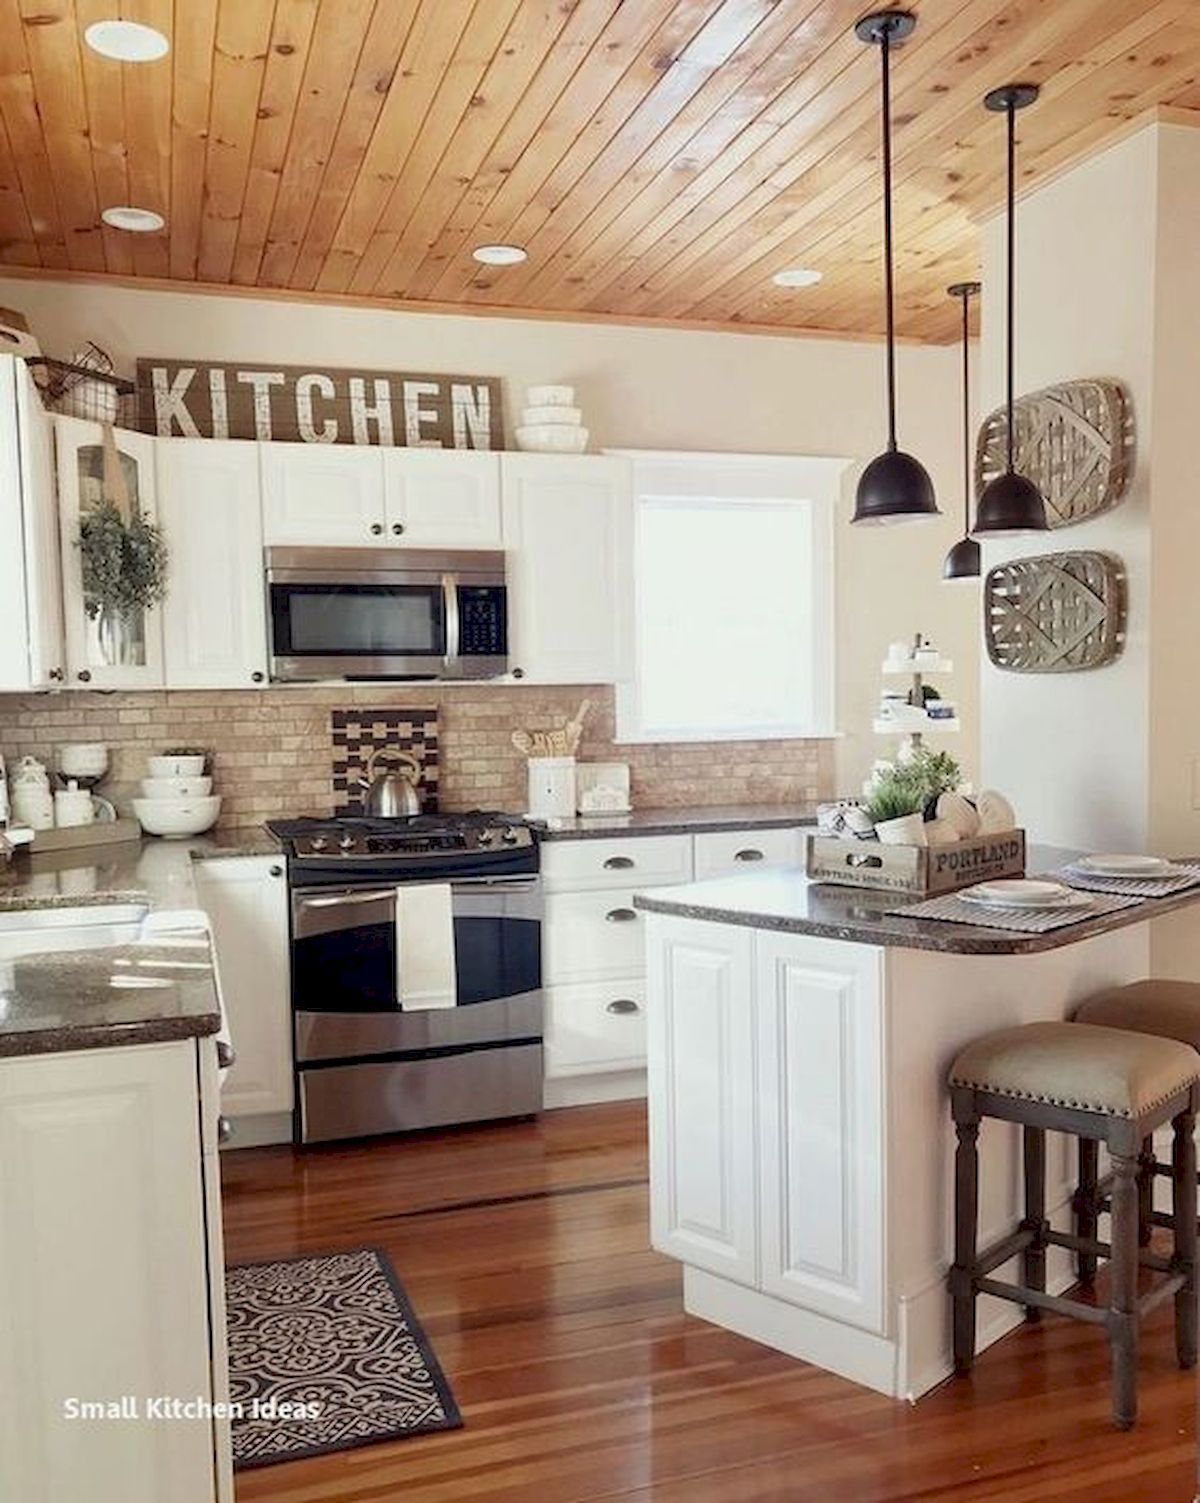 37 Farmhouse Wall Decor Ideas for Kitchen (23)